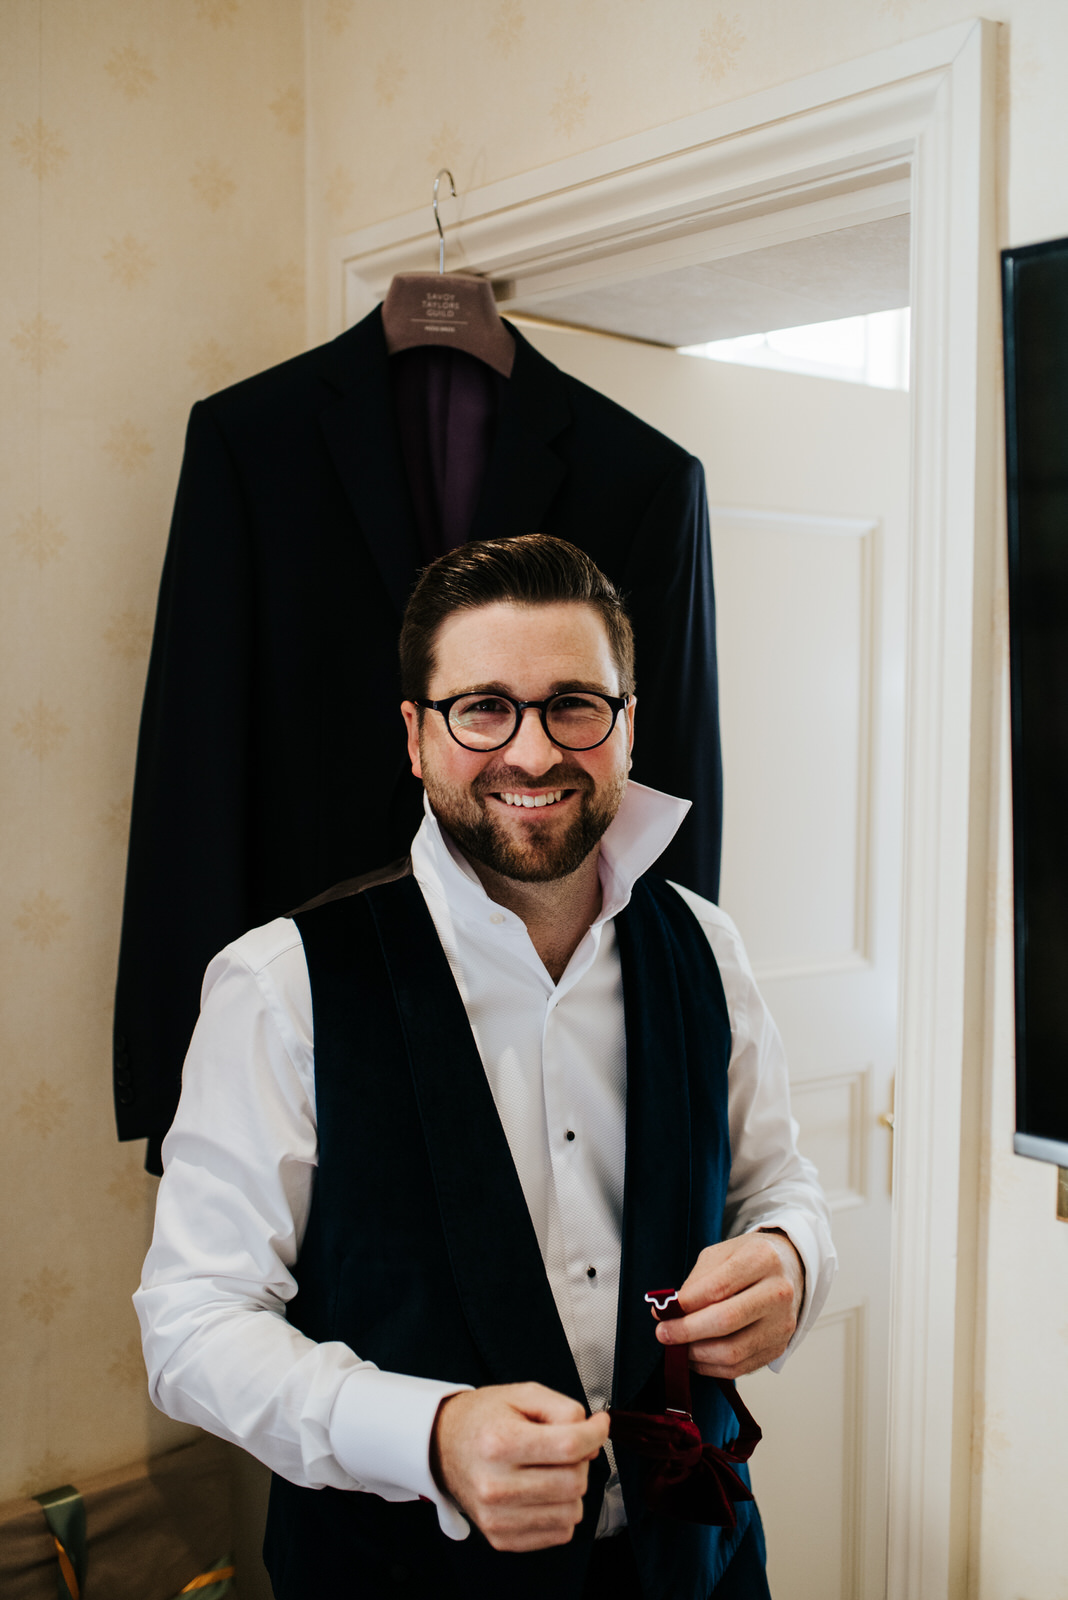 Groom smiles at camera as he buttons up his shirt